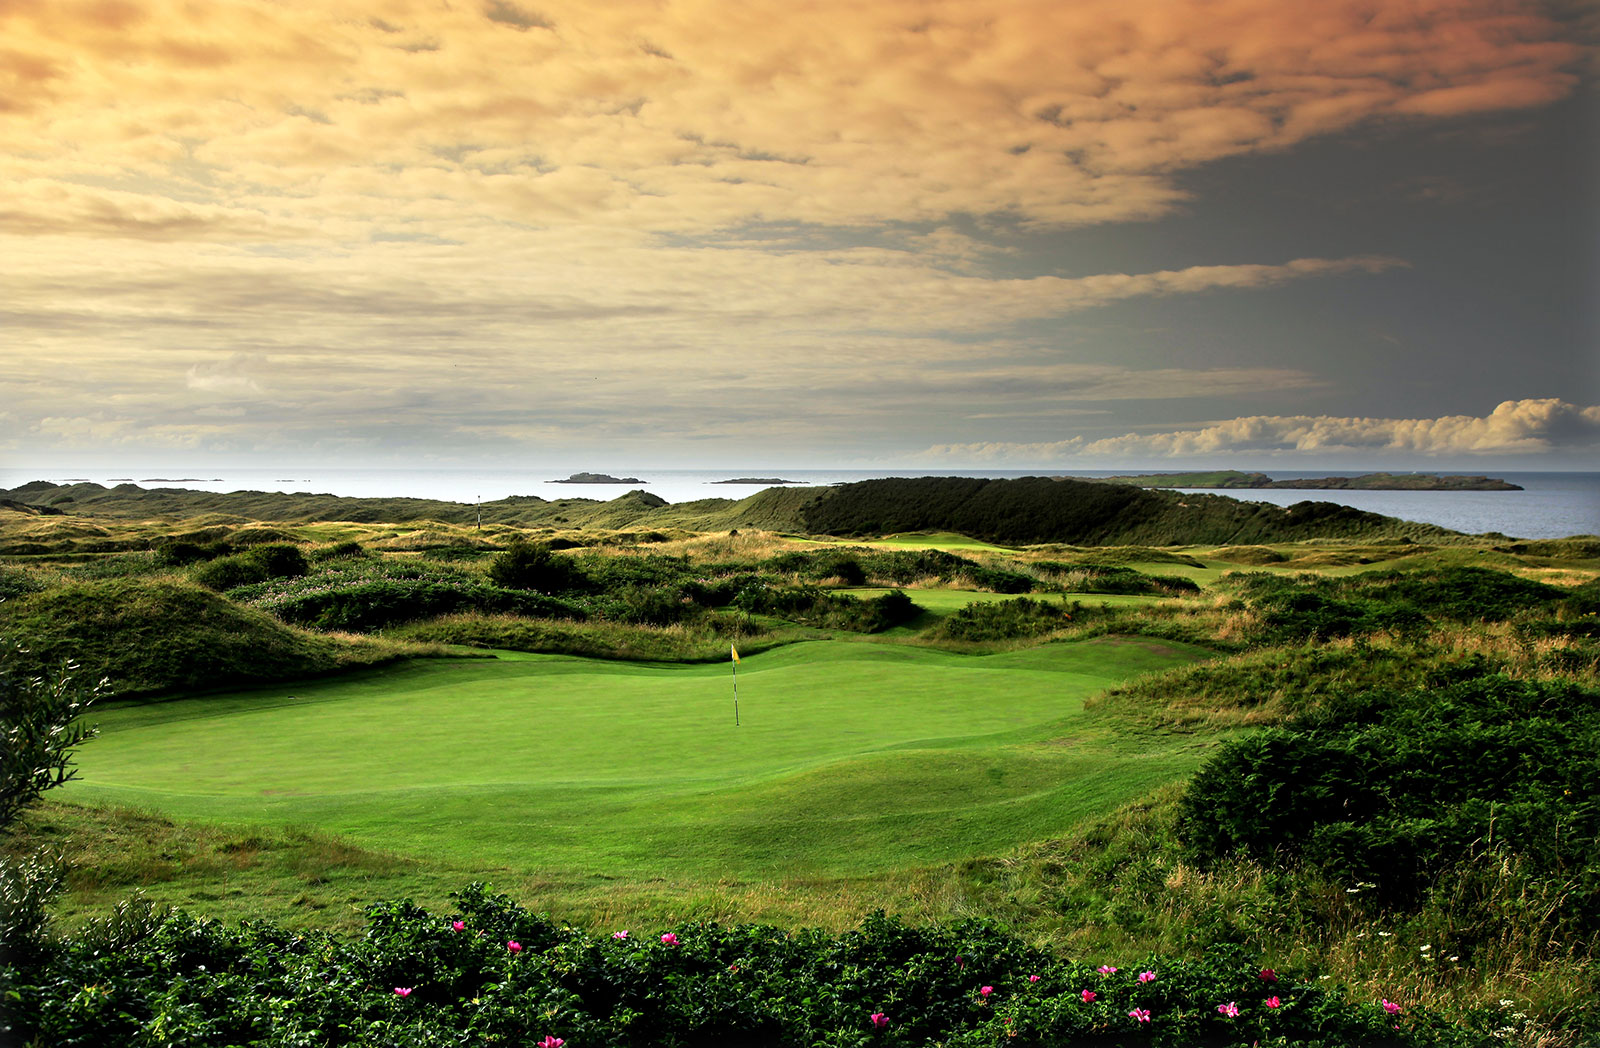 The Open returns to Ireland, and Royal Portrush, in 2019.  Book your Open Adventure now!